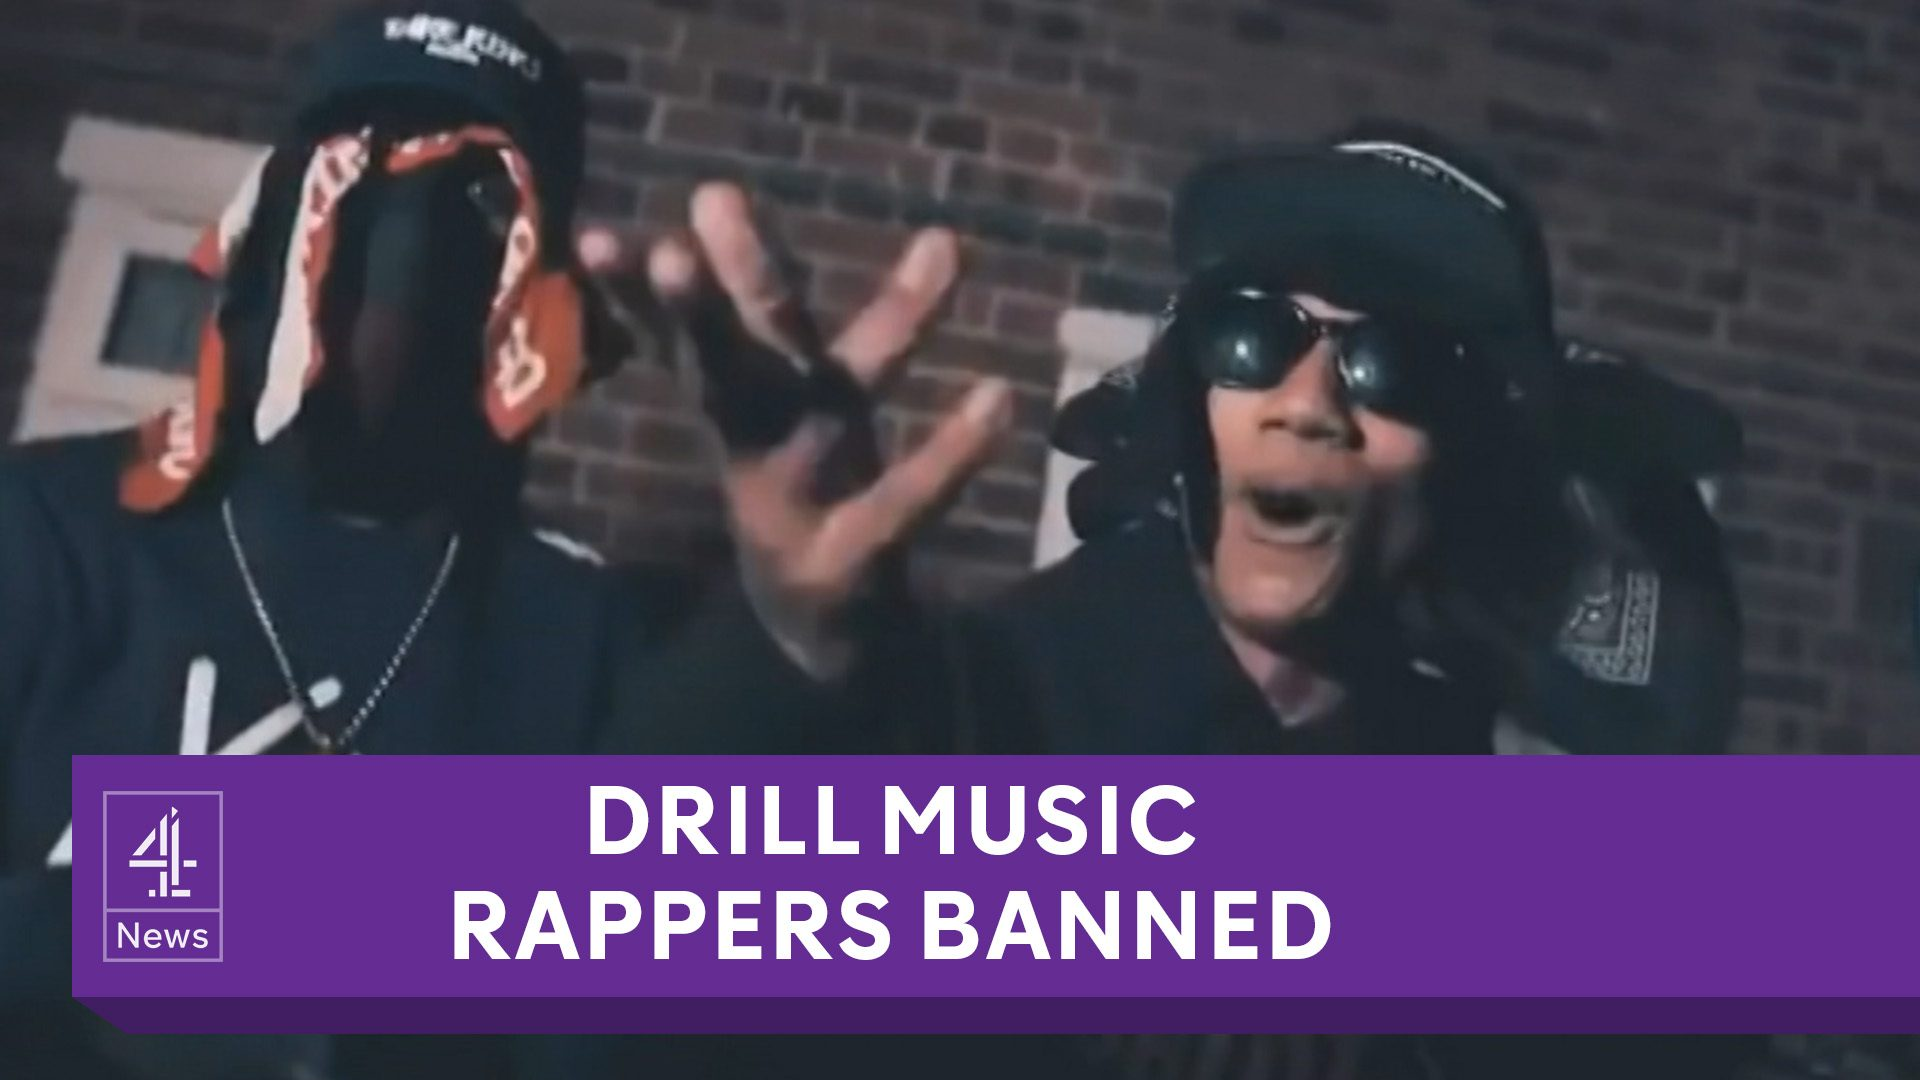 drill music as media As drill is a relatively 'new' genre of music, you tend to find a lot of the people involved in it are young so i personally am not surprised by the content of the music.